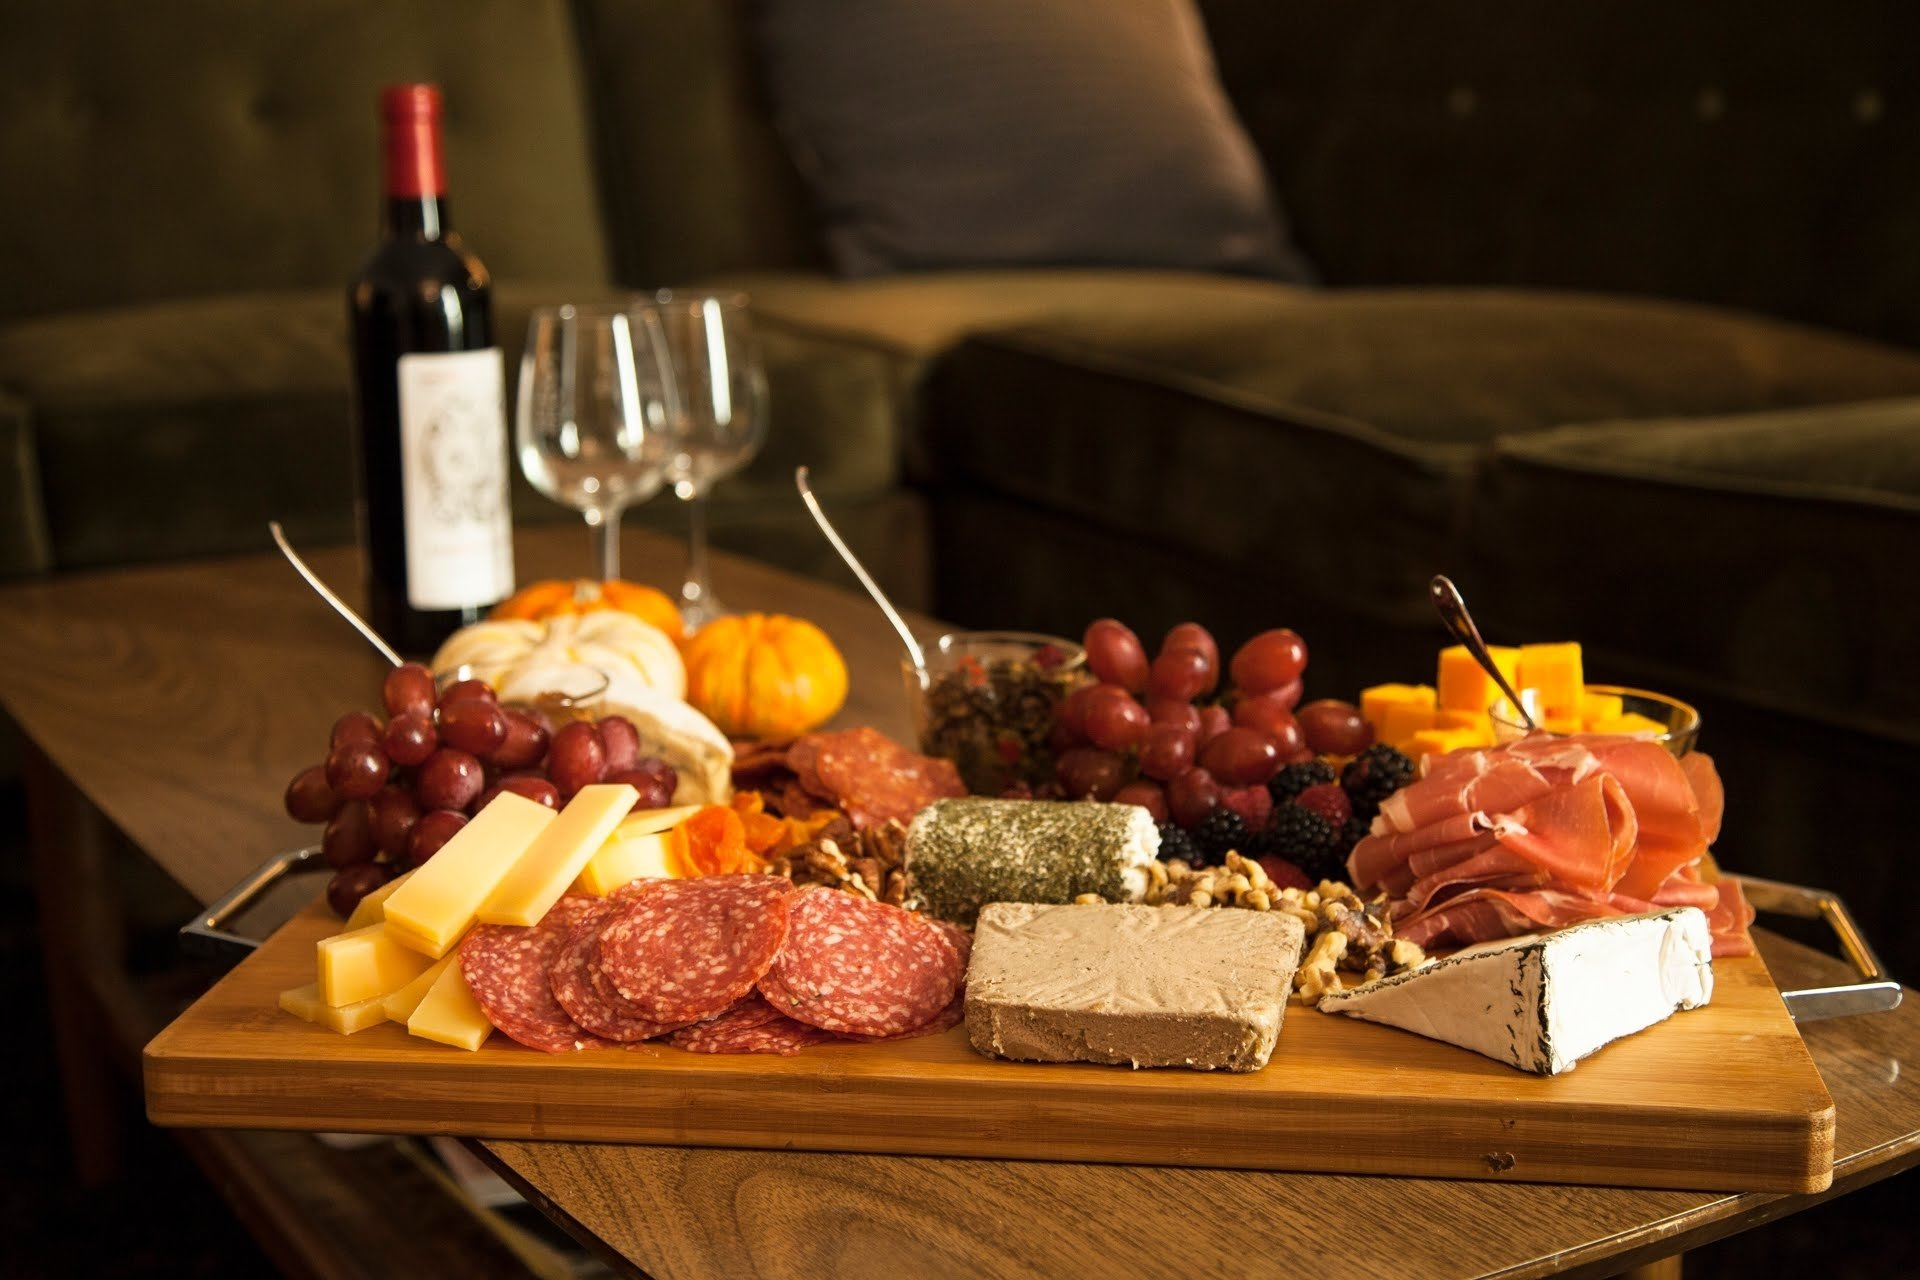 10 Unique Meat And Cheese Platter Ideas decadent meat cheese platter youtube 1 2021